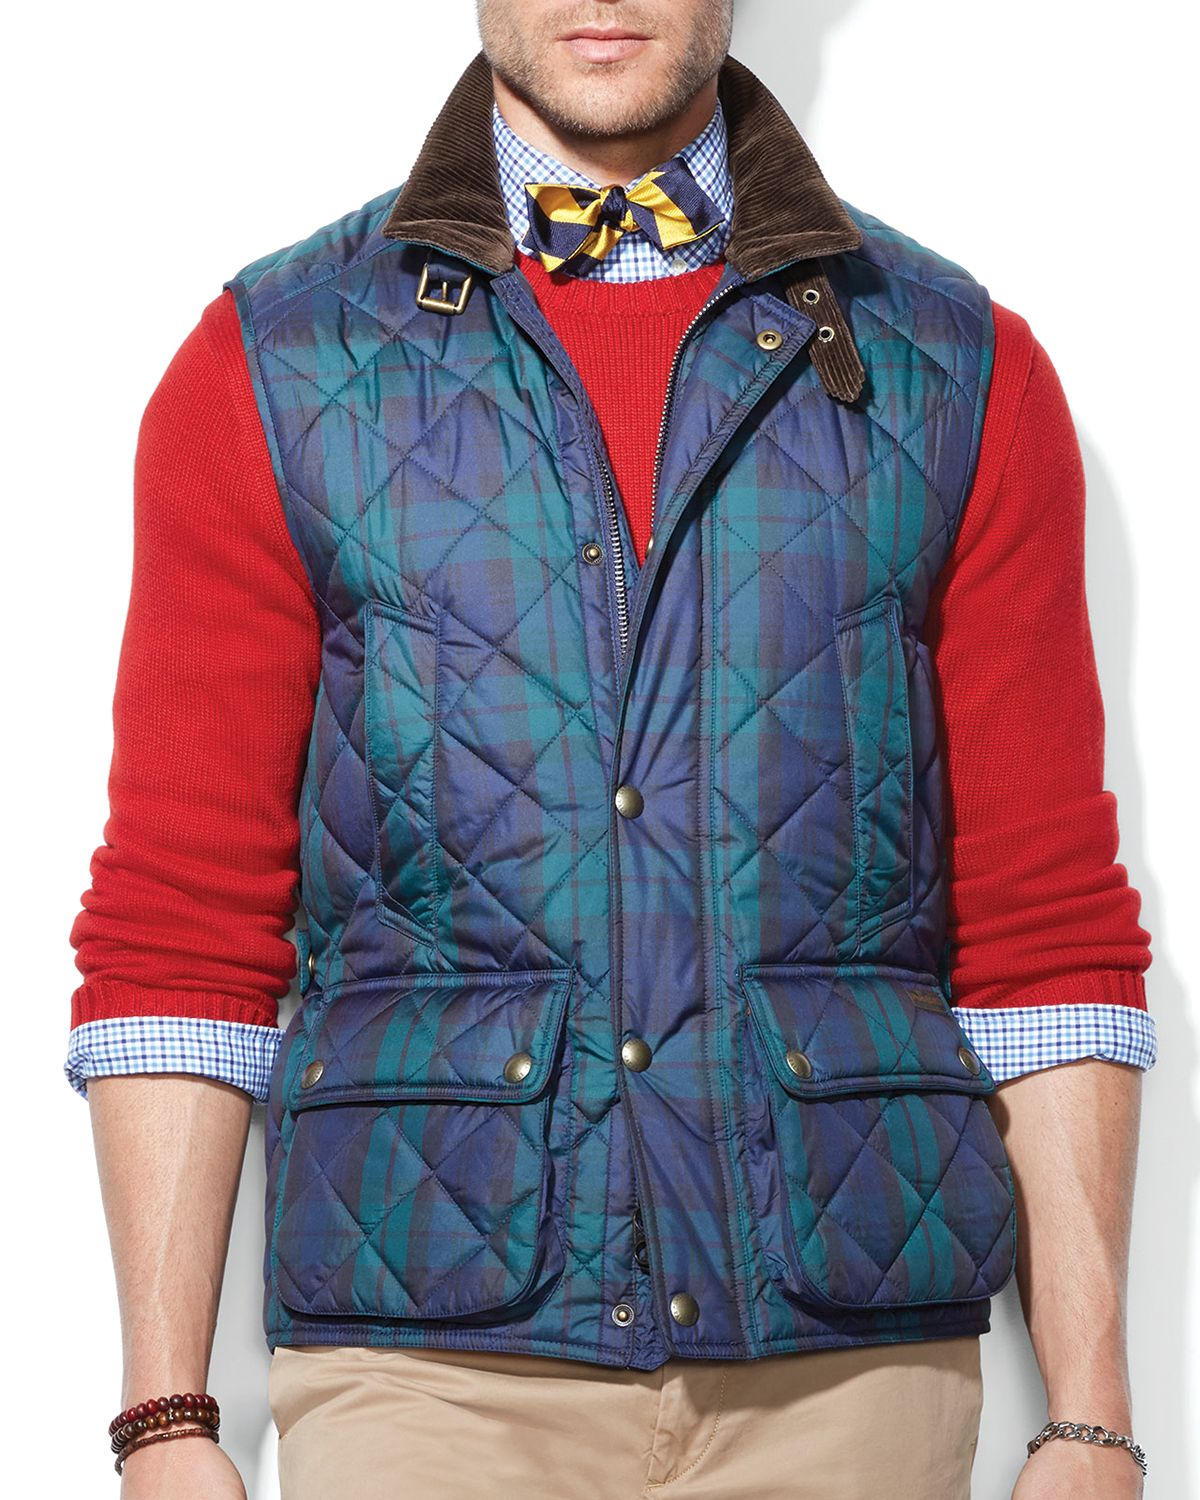 Lyst - Ralph lauren Polo Quilted Vest in Blue for Men : polo quilted vest - Adamdwight.com